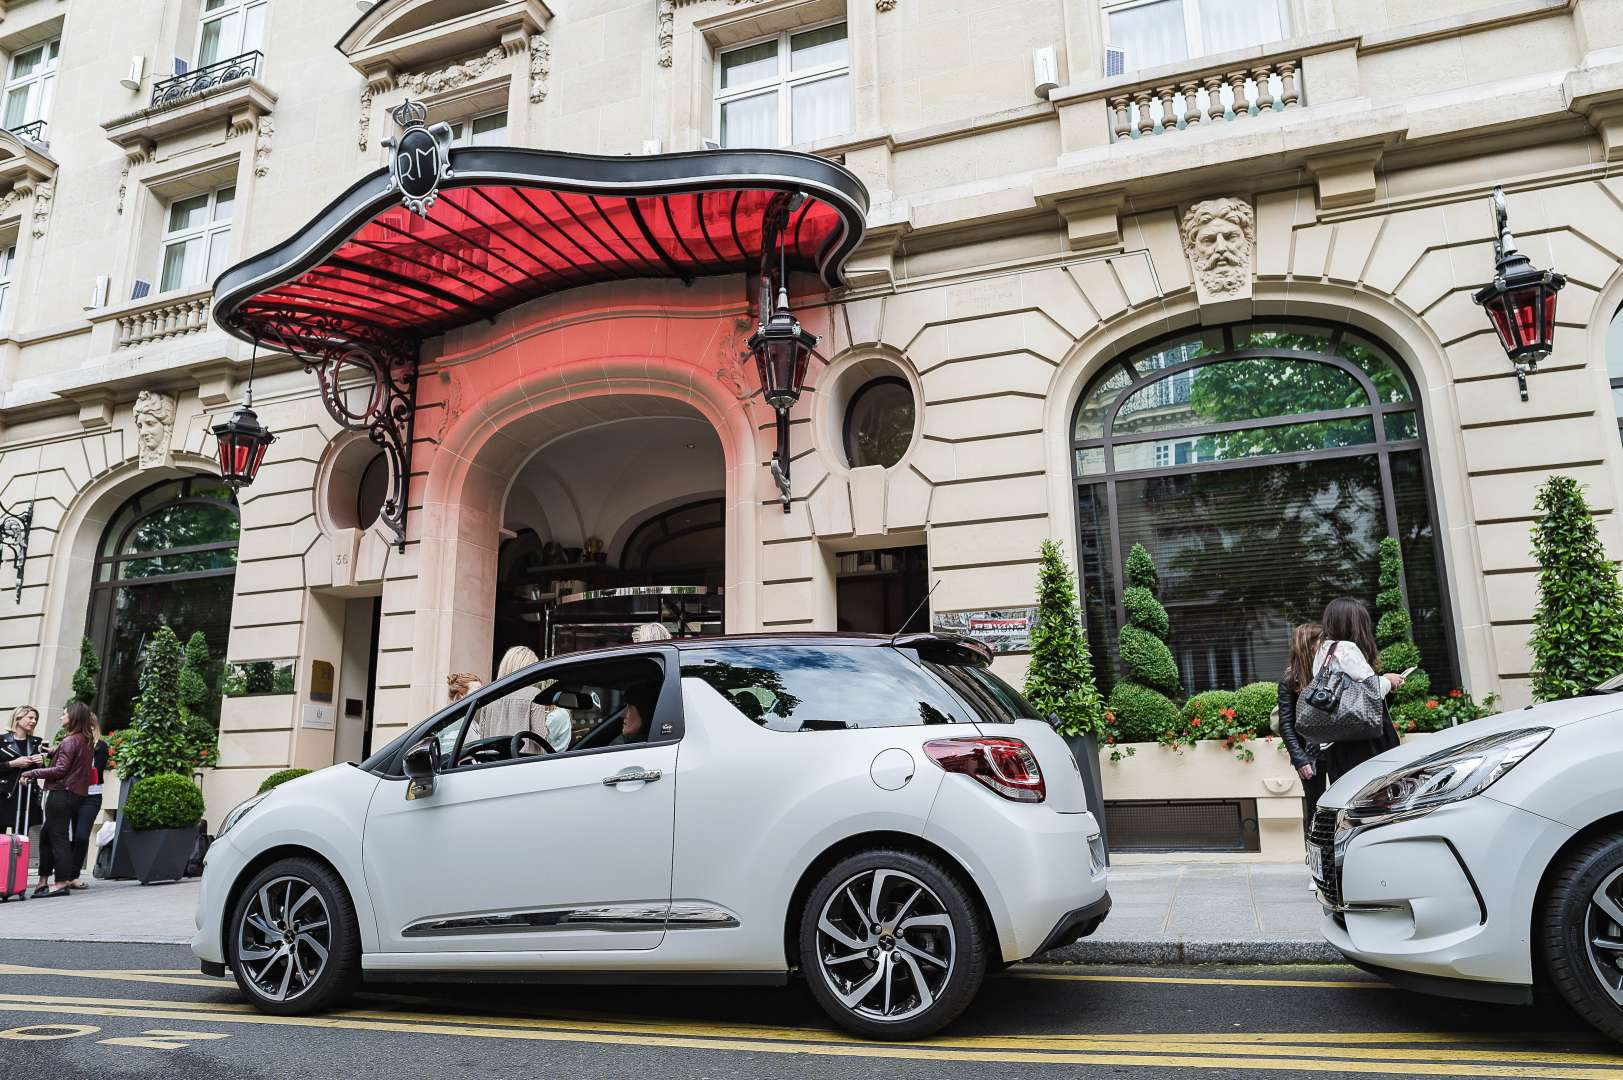 DS3 DS givenchy le makeup car paris city trip pierre hermé royal monceau belgian blogger travel lifestyle fashion les ombres la scène restaurant travel review